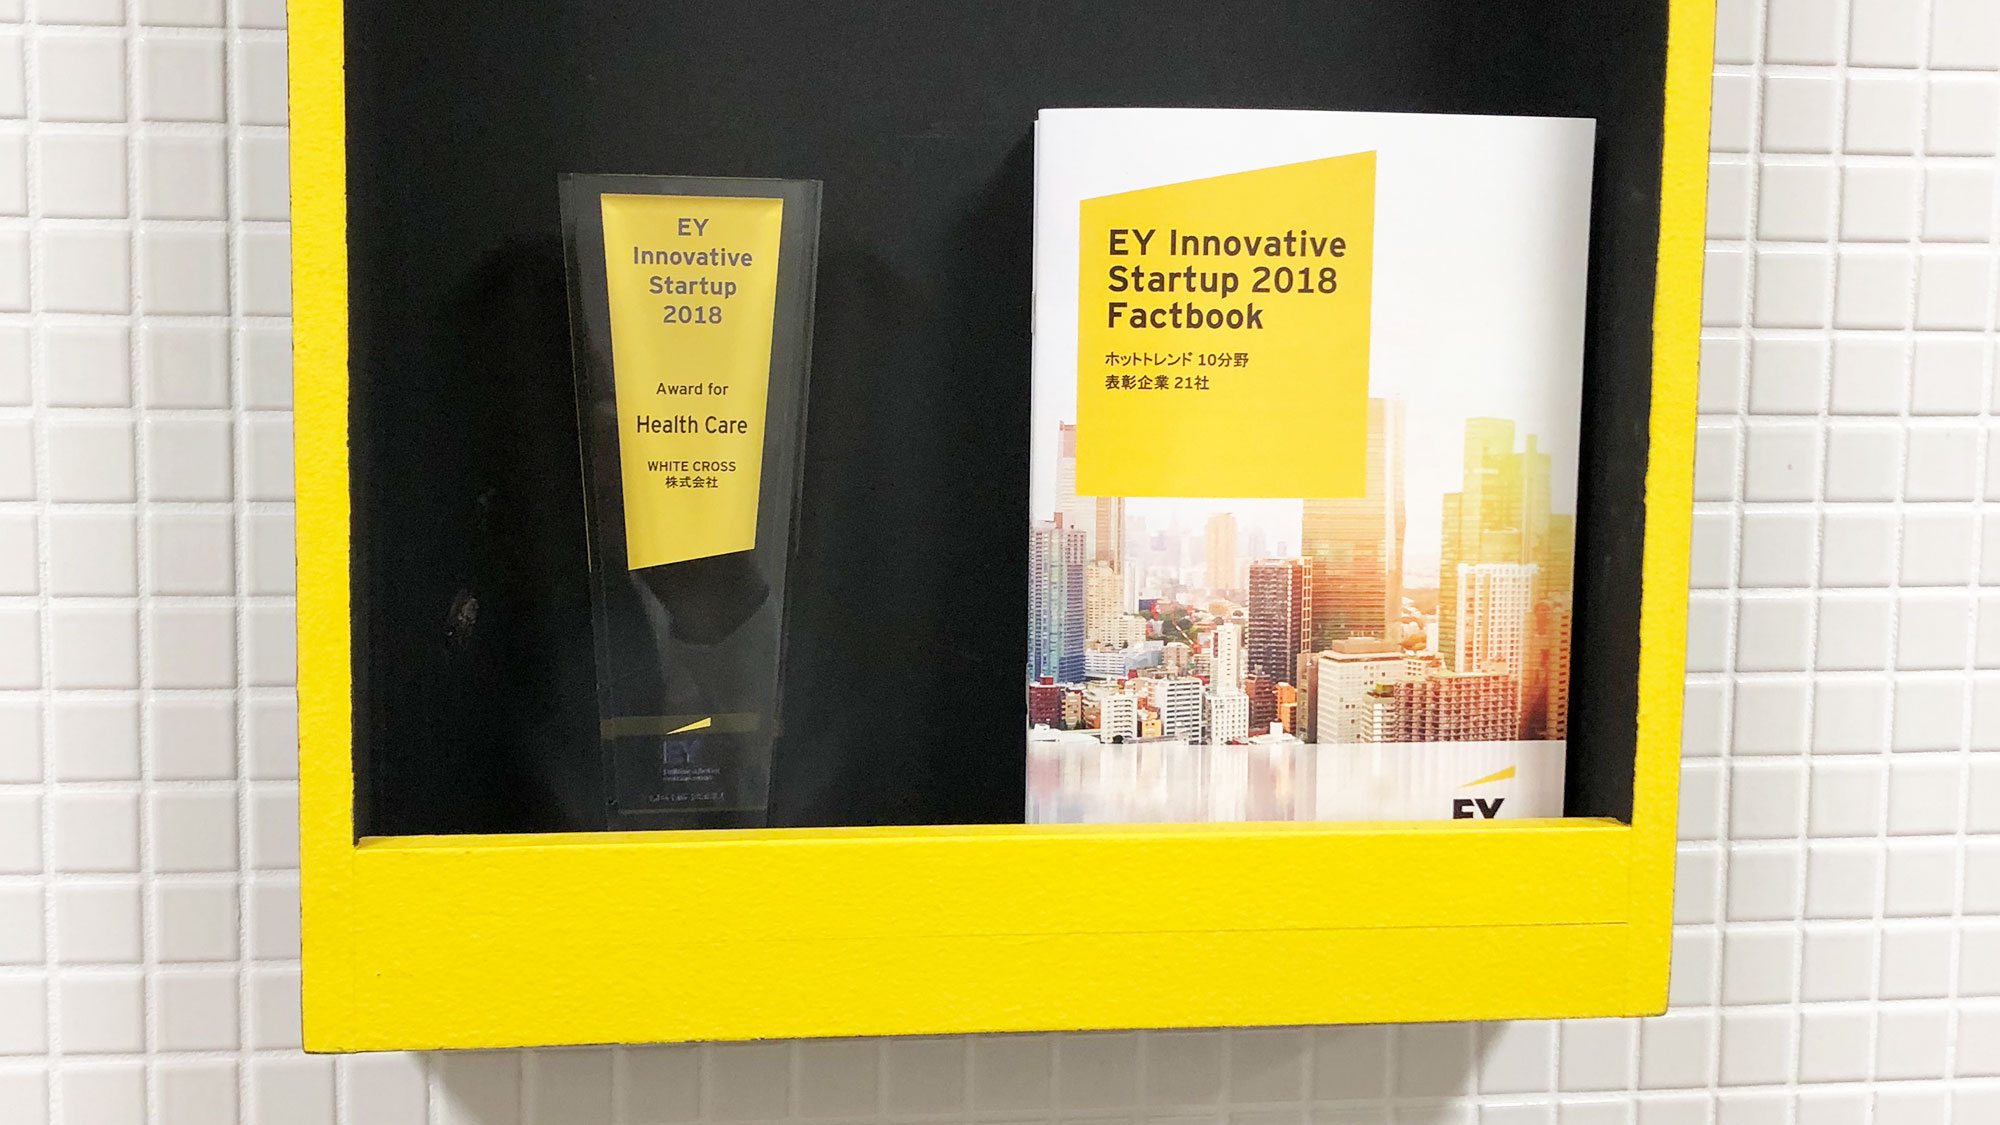 EY Innovative Startup 2018 & 24 hour IT PEOPLE